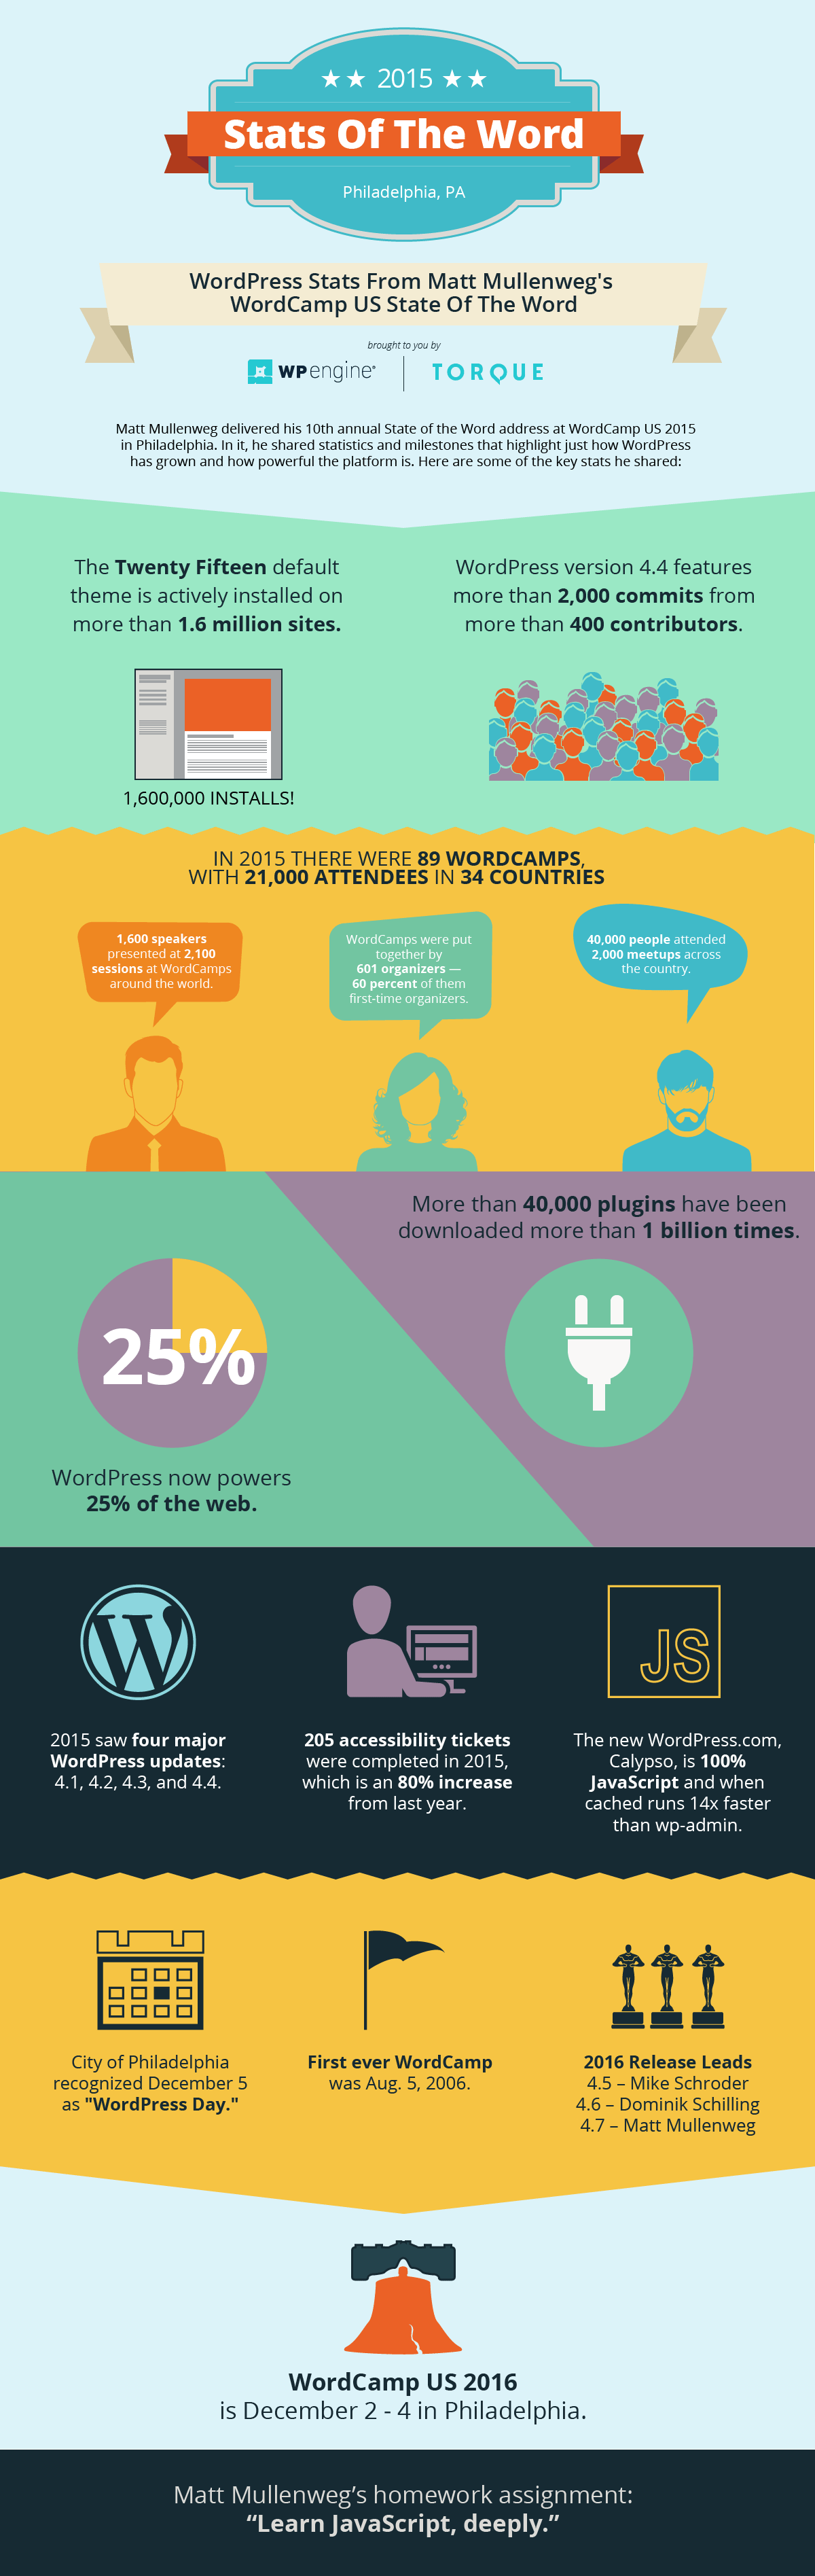 wordpress stats of the word infographic